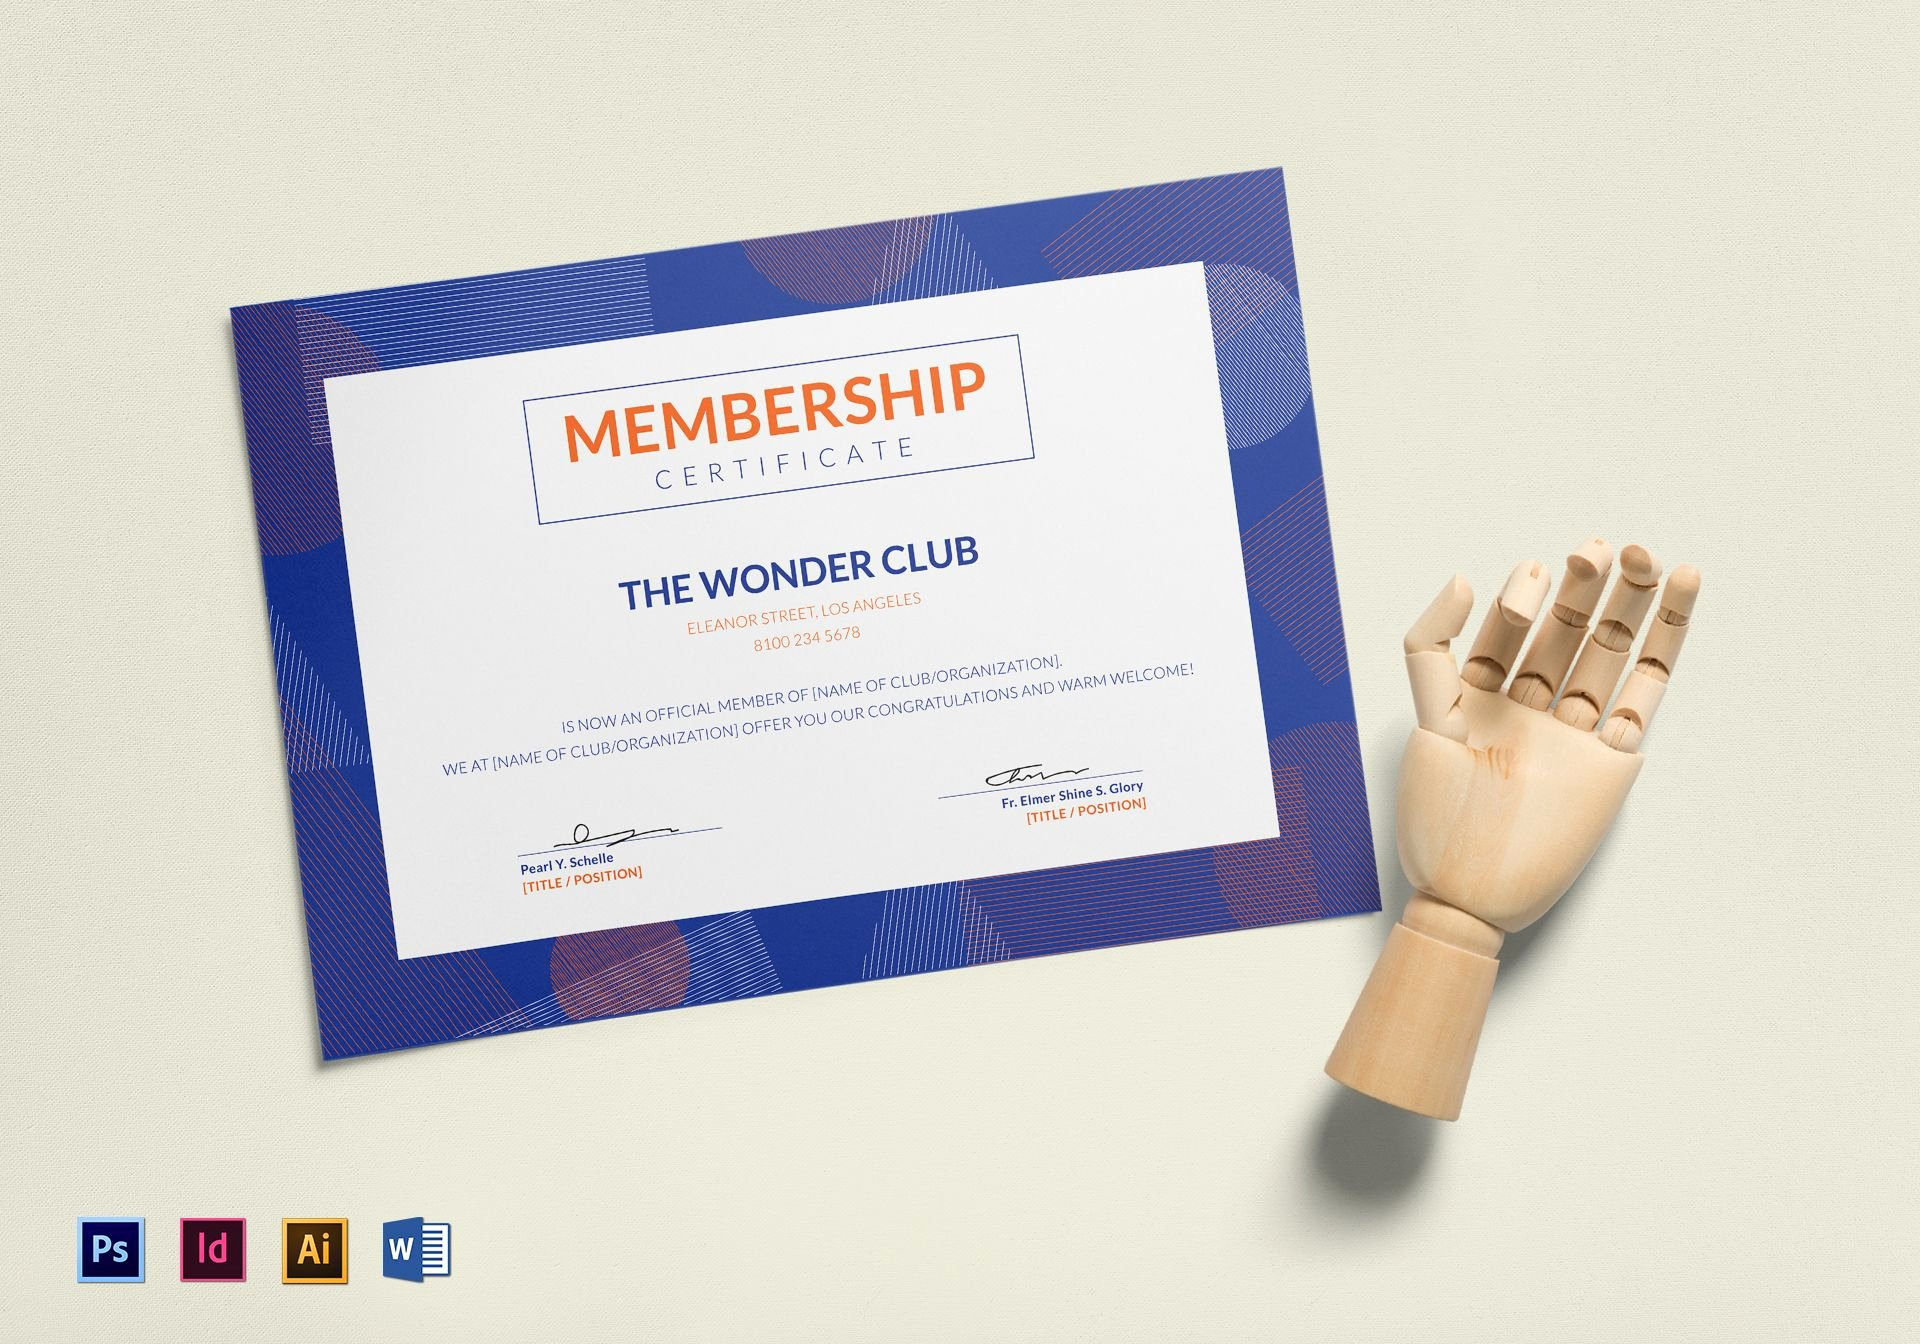 Certificate Of Membership Template Fresh Club Membership Certificate Design Template In Psd Word